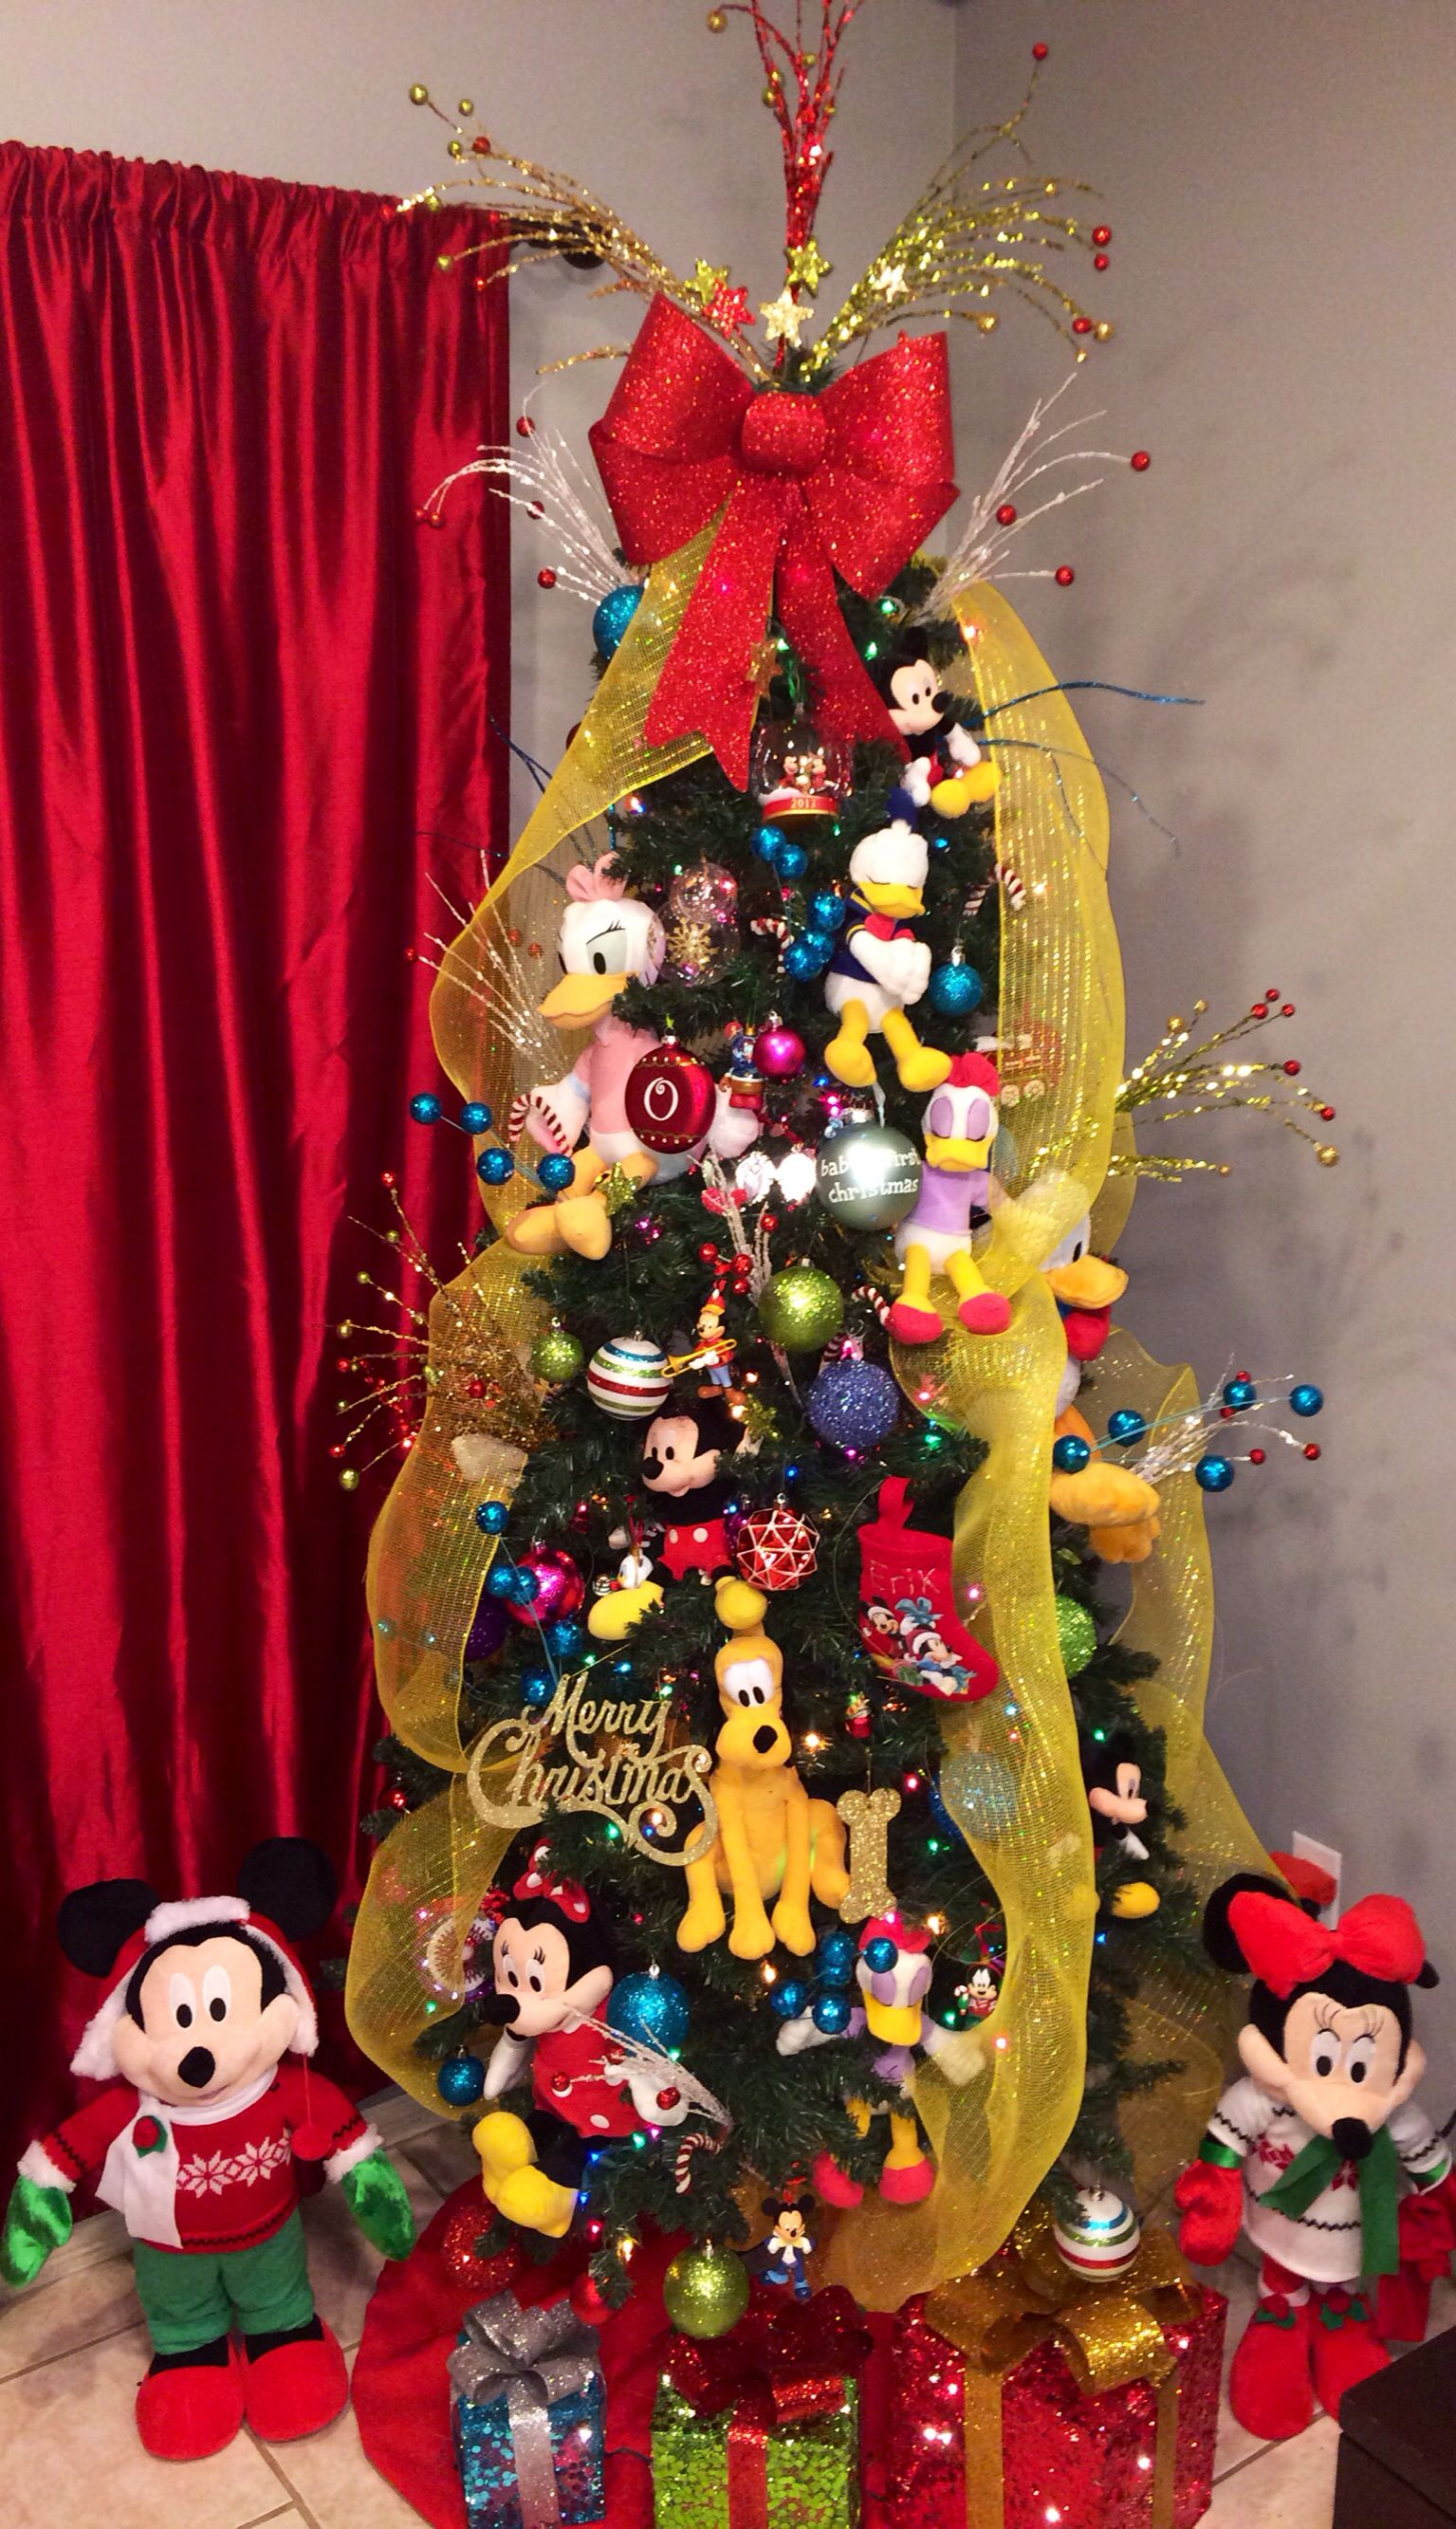 Christmas Tree Decorations 2014 christmas tree decorations ideas | mickey mouse clubhouse, mickey